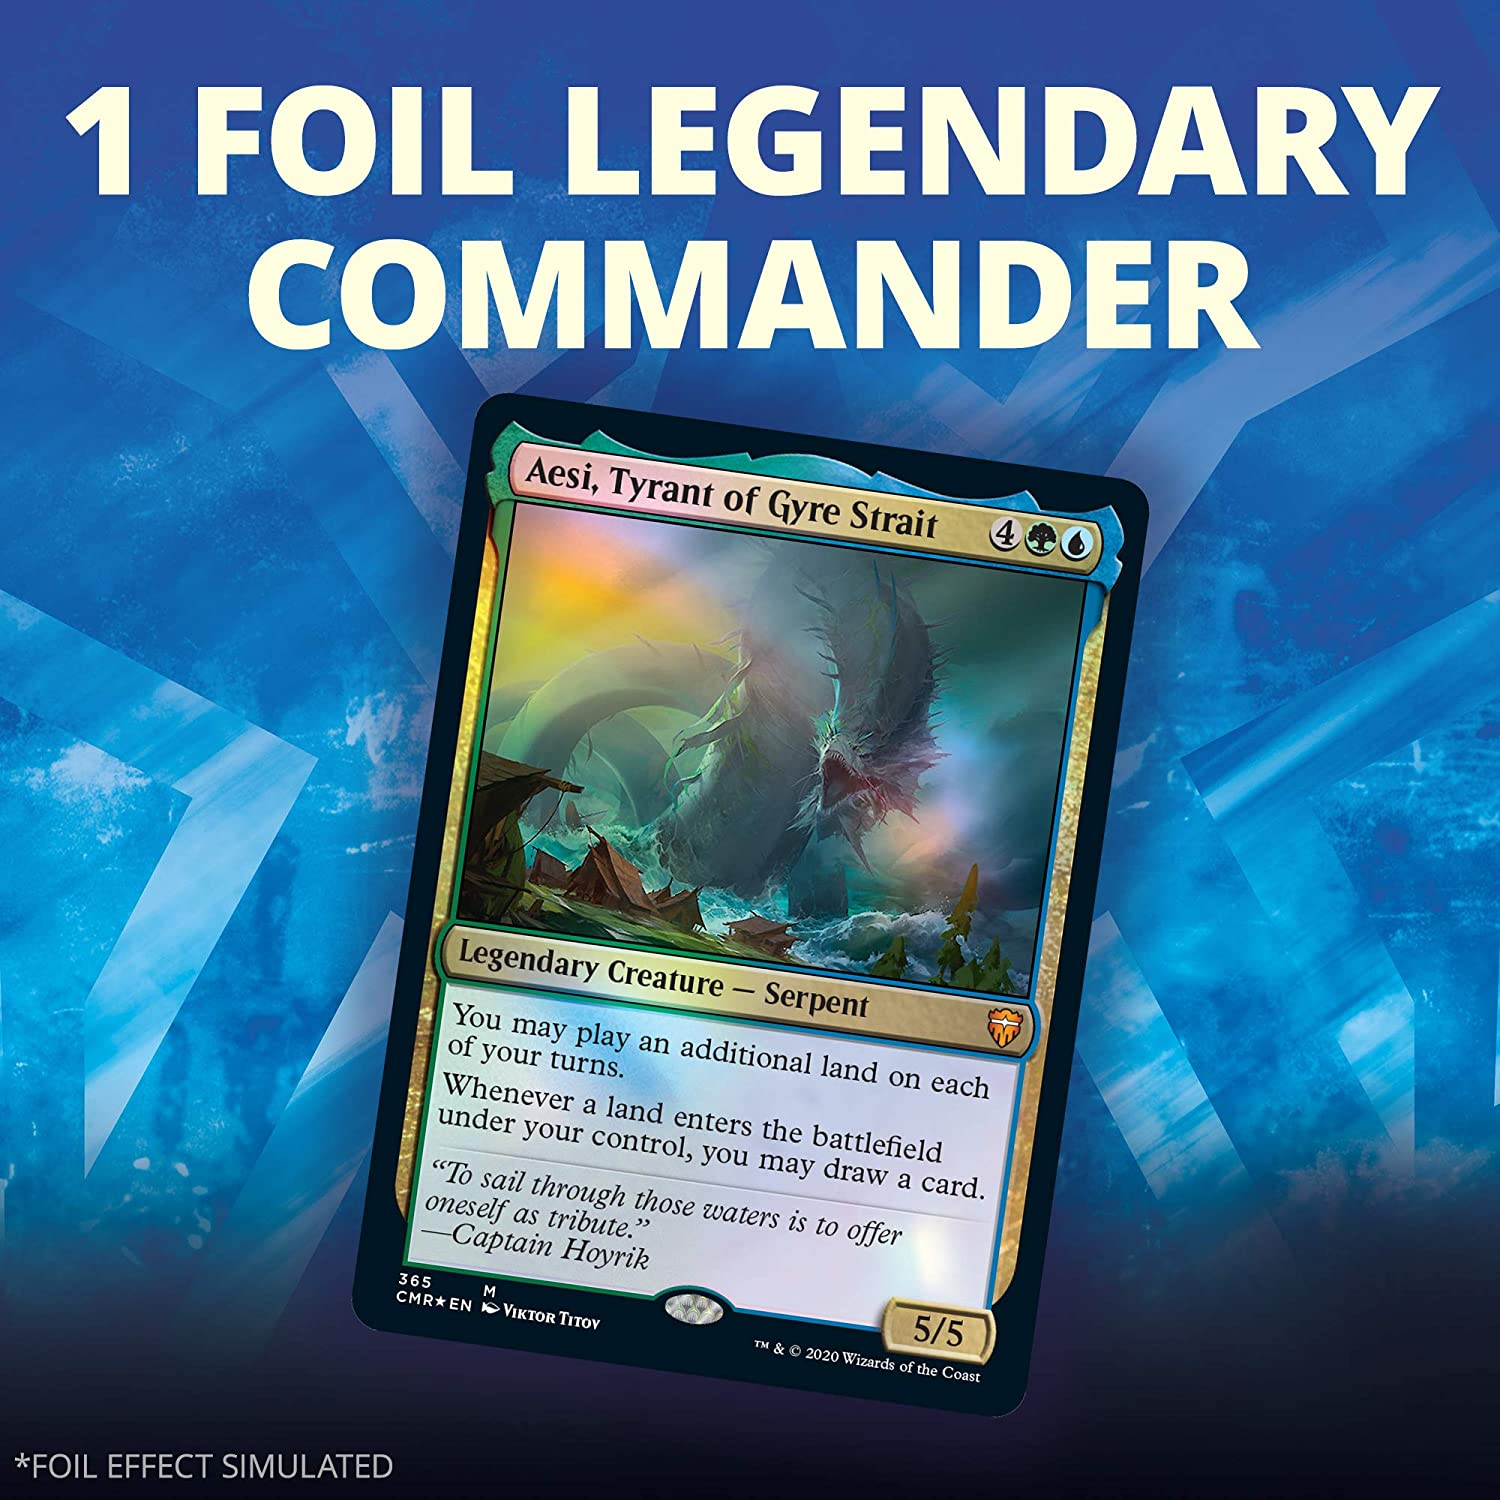 Blue-Green Magic: The Gathering Commander Legends Commander Deck 100 Card Ready-to-Play Deck Reap The Tides 1 Foil Commander